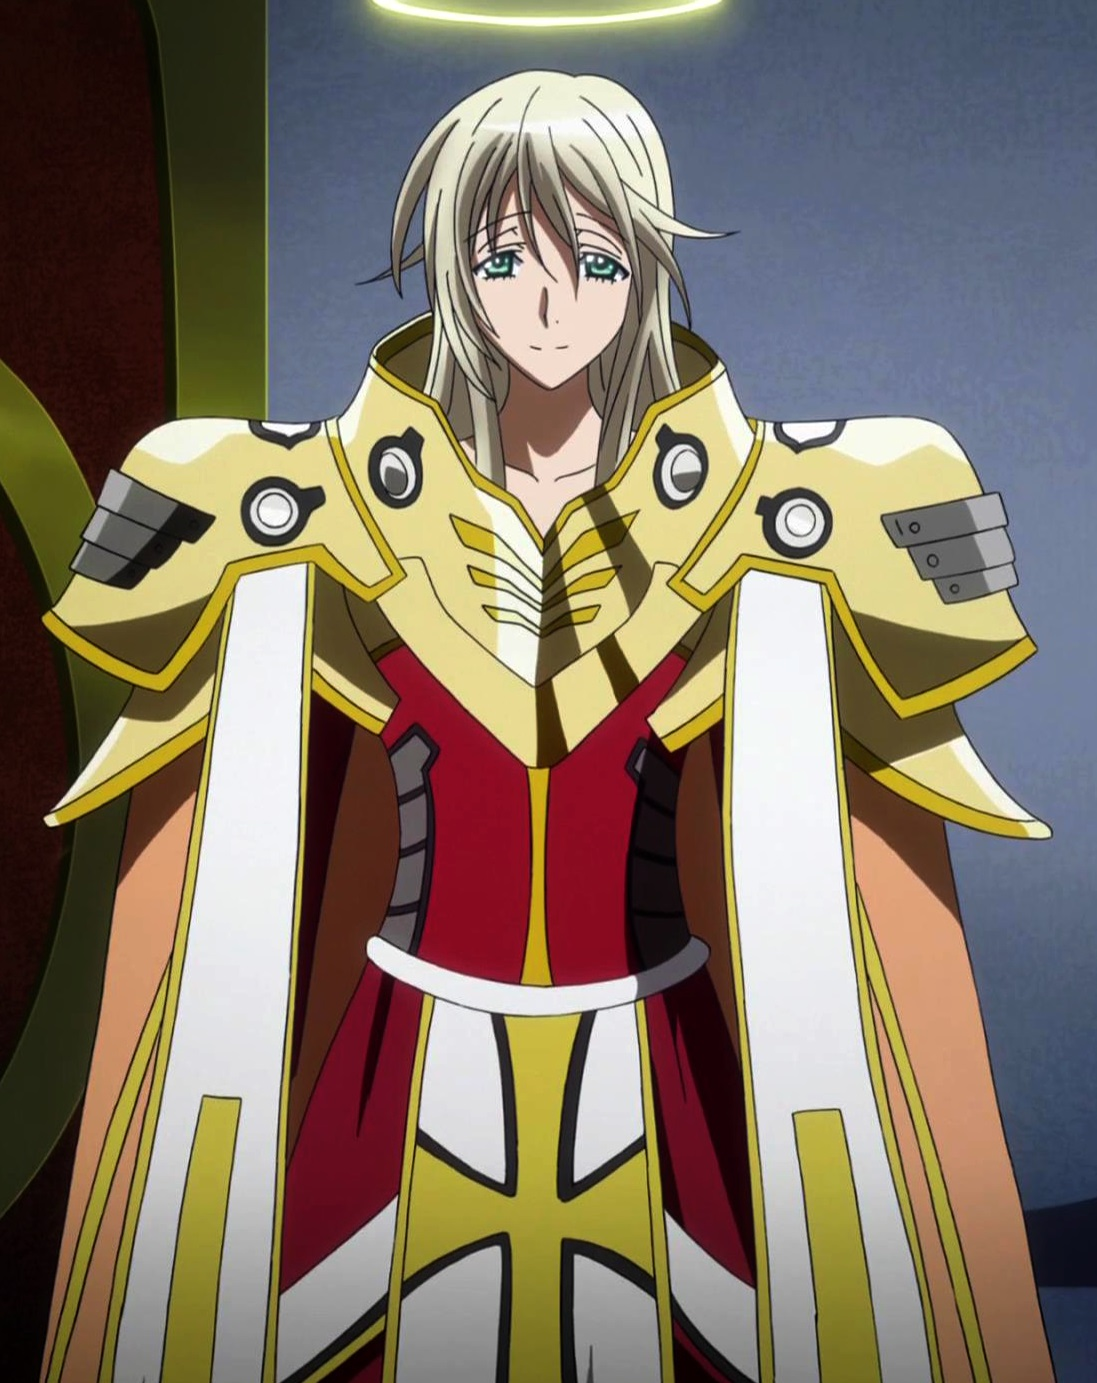 Michael | High School DxD Wiki | FANDOM powered by Wikia